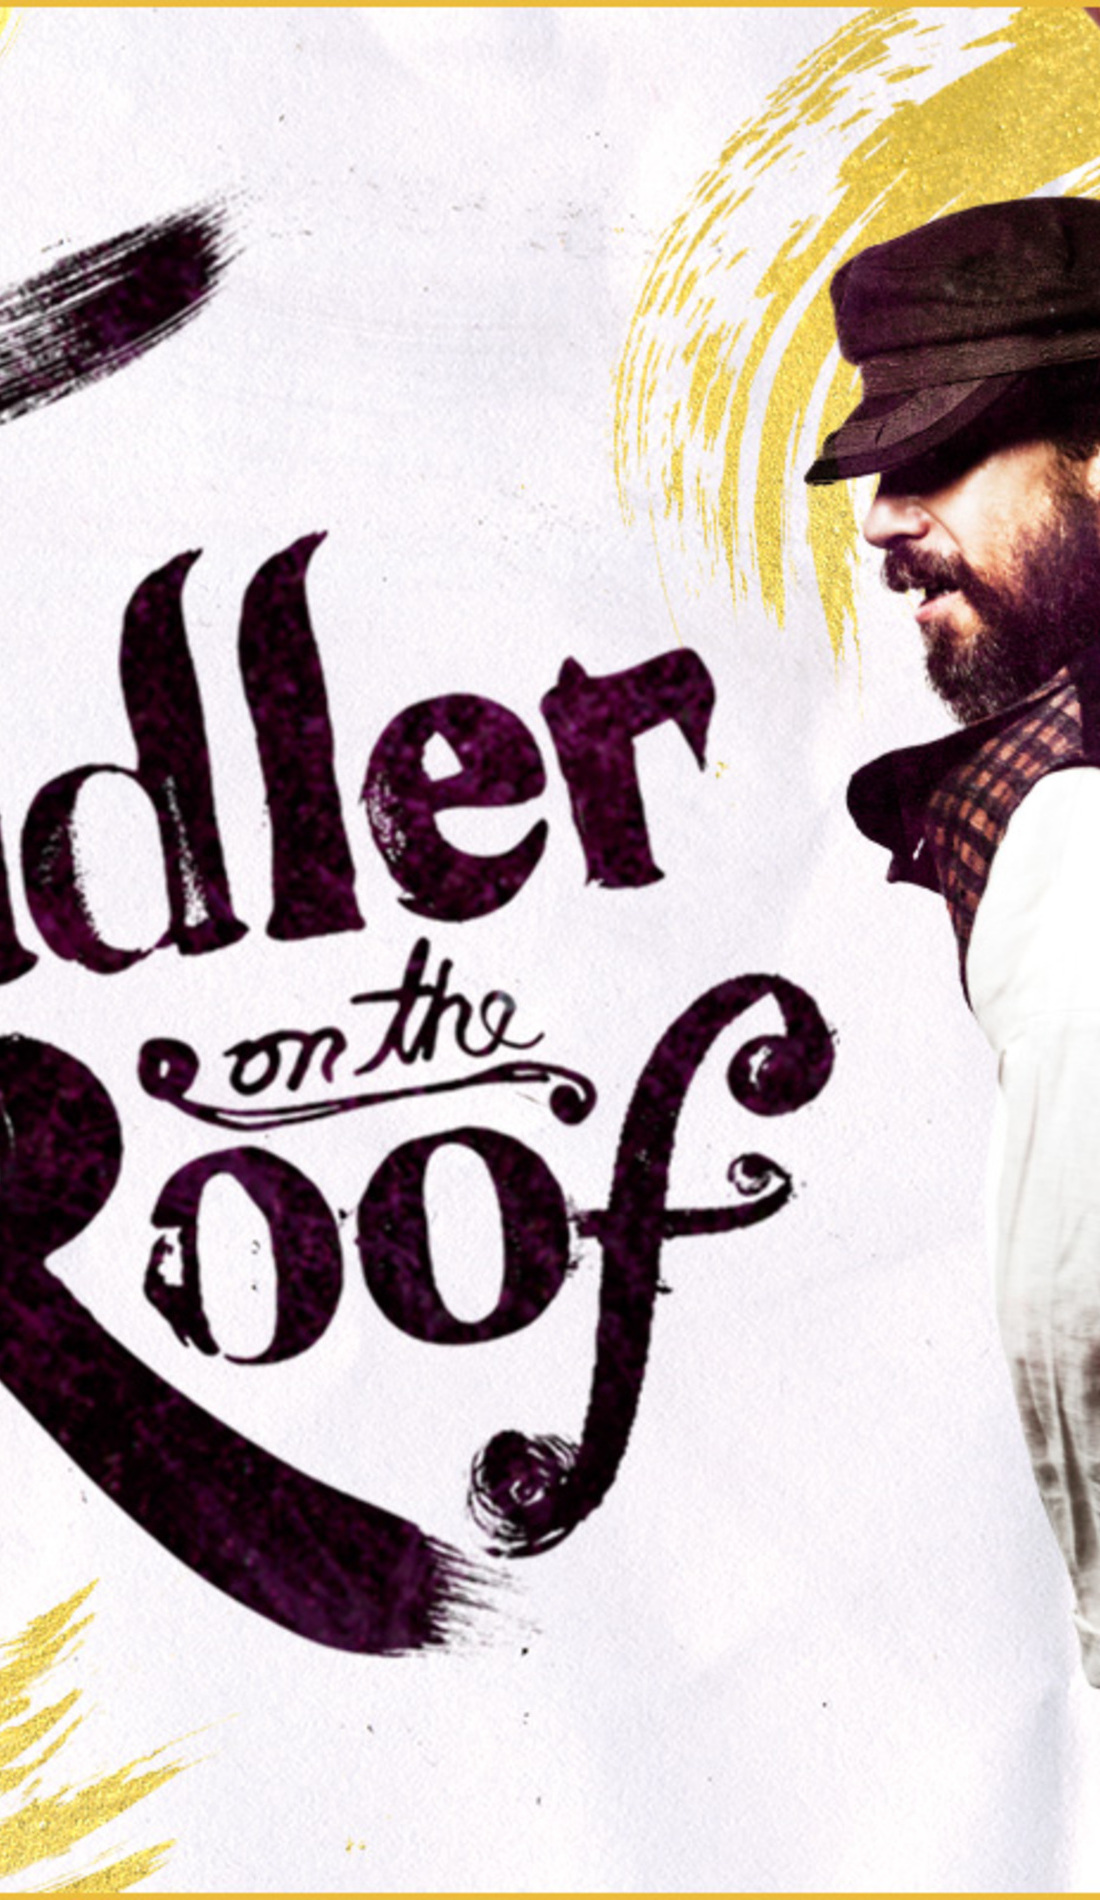 A Fiddler on the Roof live event